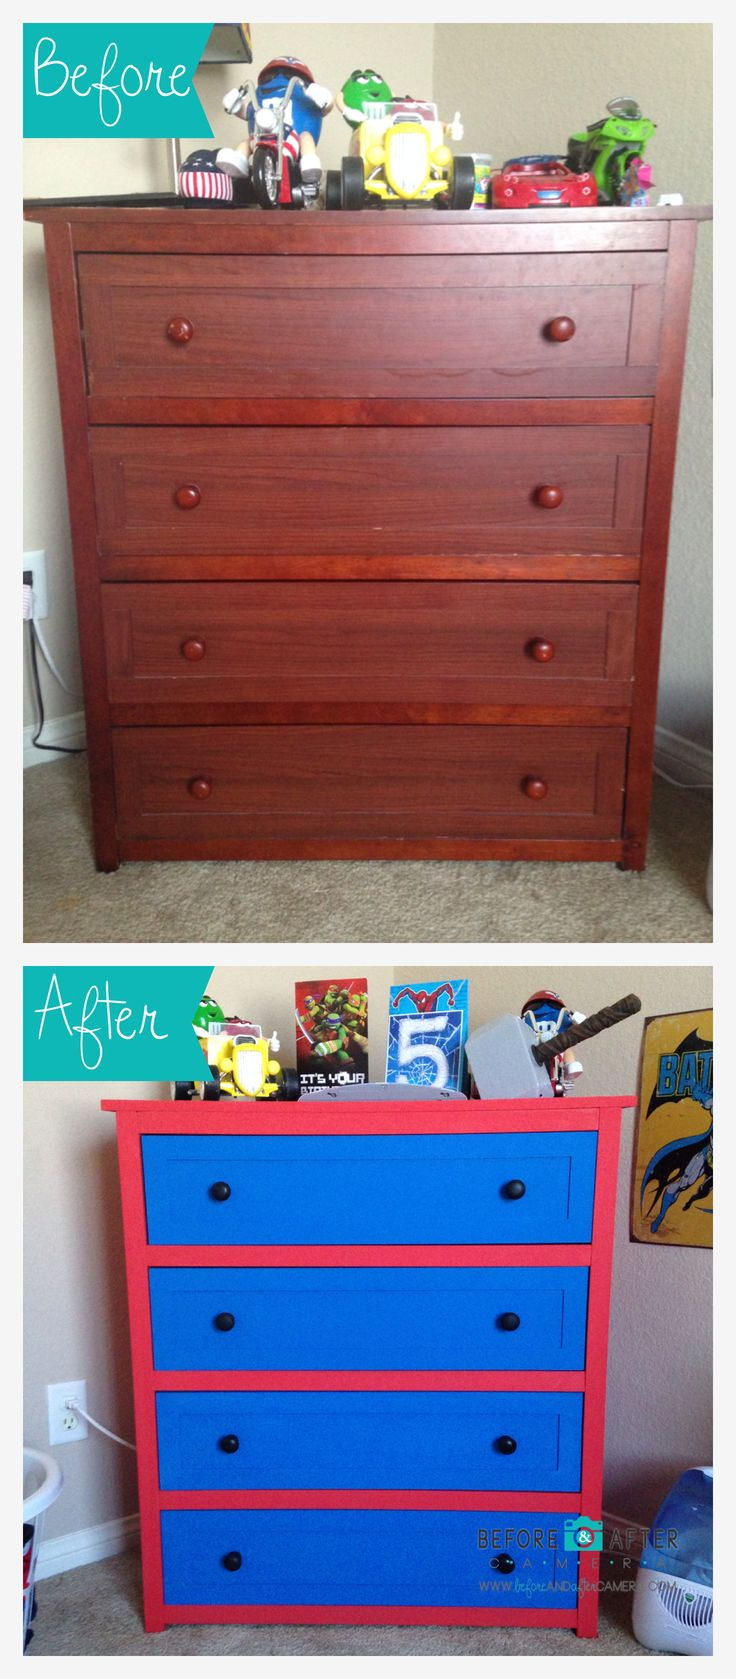 Spiderman bedroom paint ideas - Dresser Makeover For My Son S Room Spiderman Theme